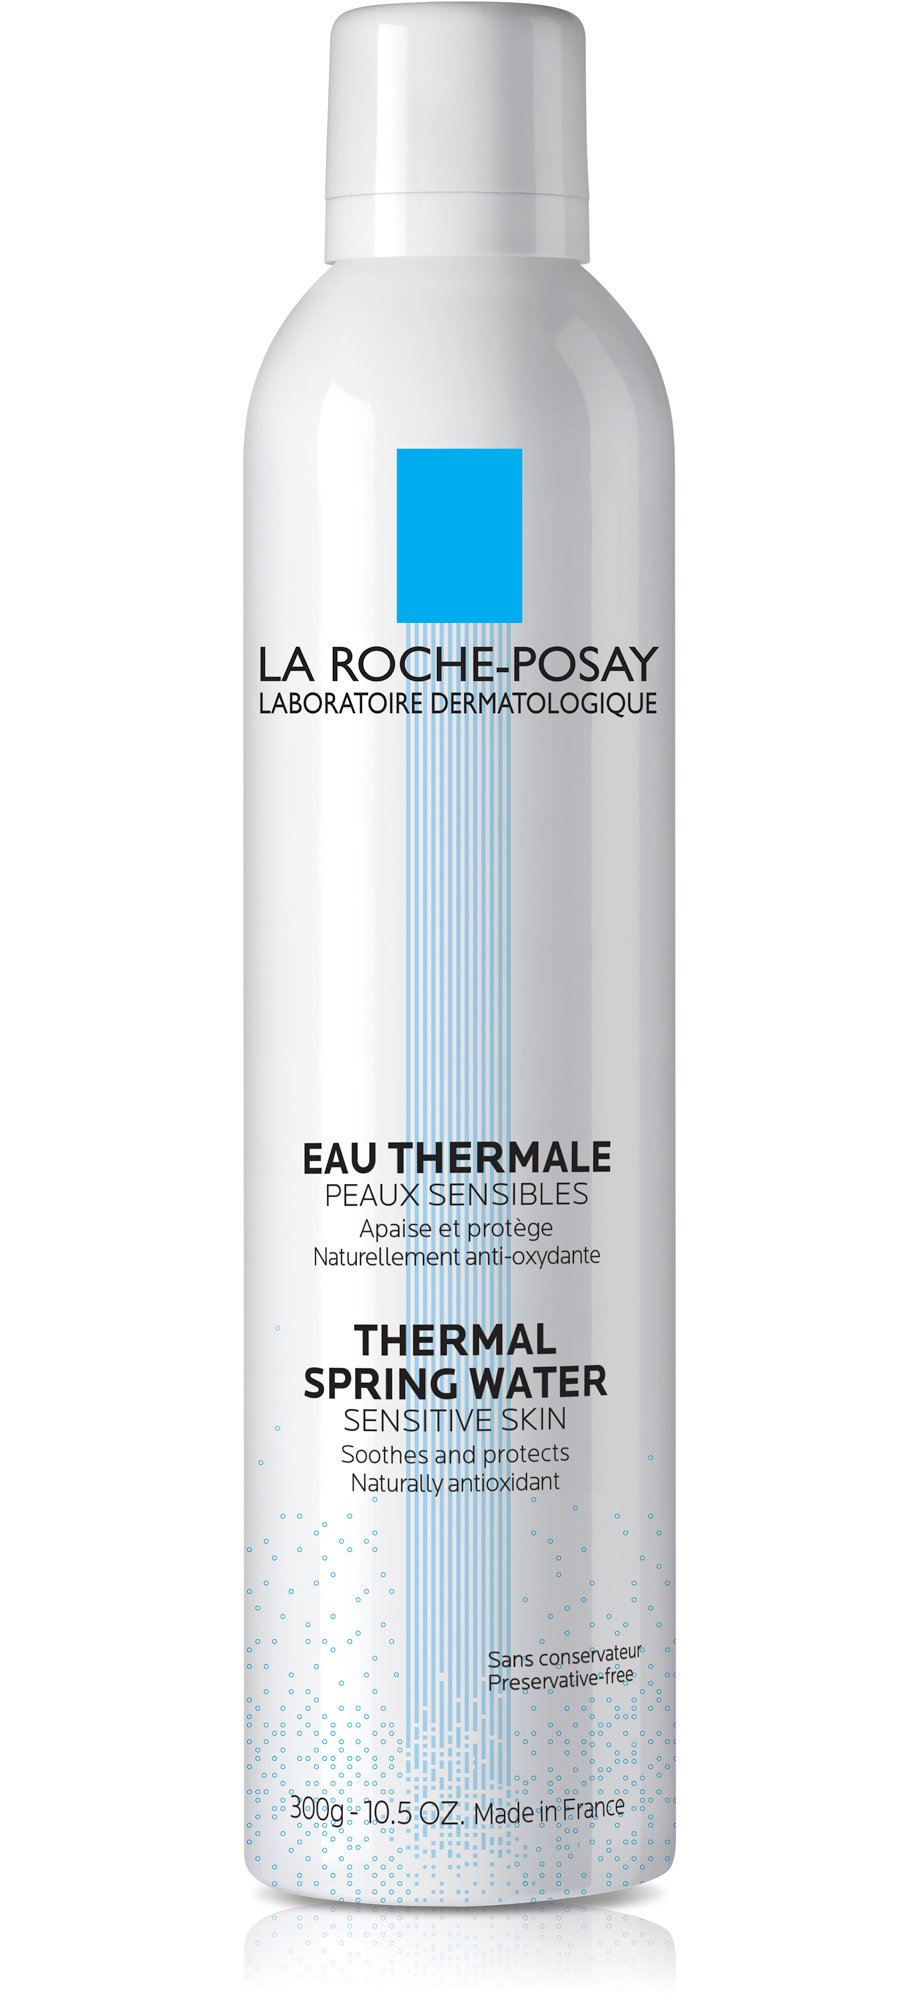 La Roche-Posay Thermal Spring Water, 10.1 Fl. Oz. by La Roche-Posay